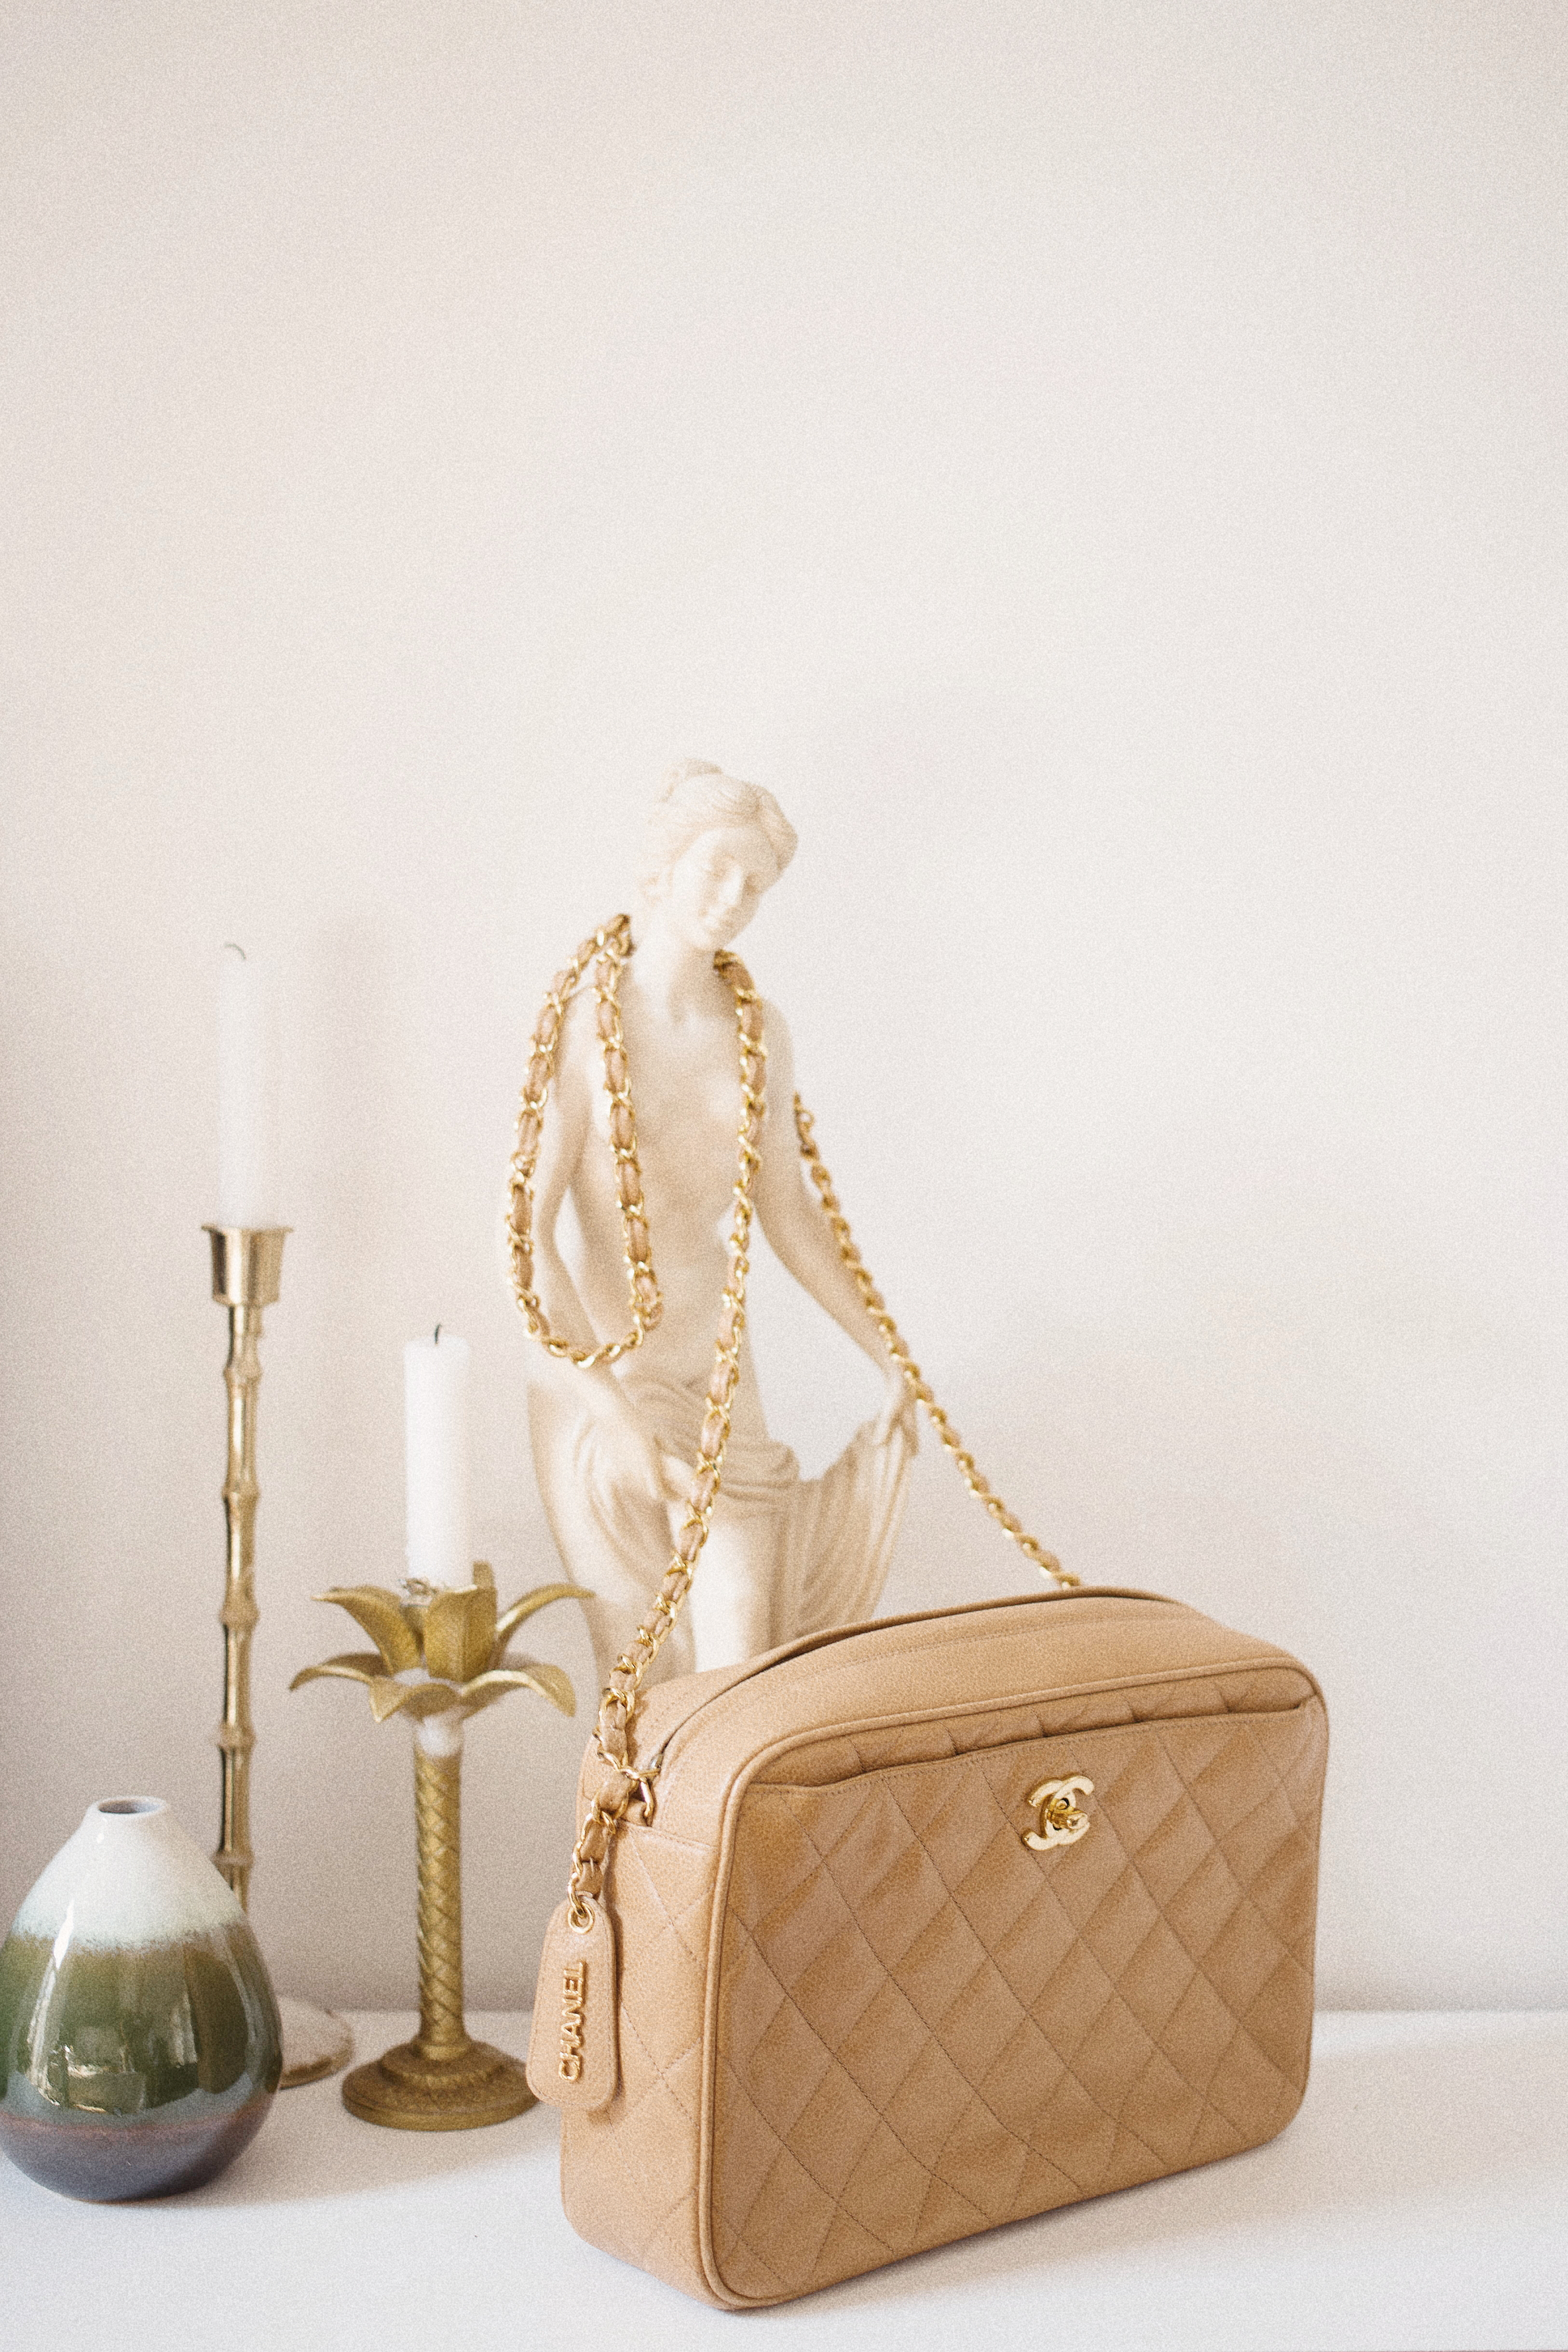 e1ae6348b25a Have you ever purchase a vintage designer item? How was your experience?